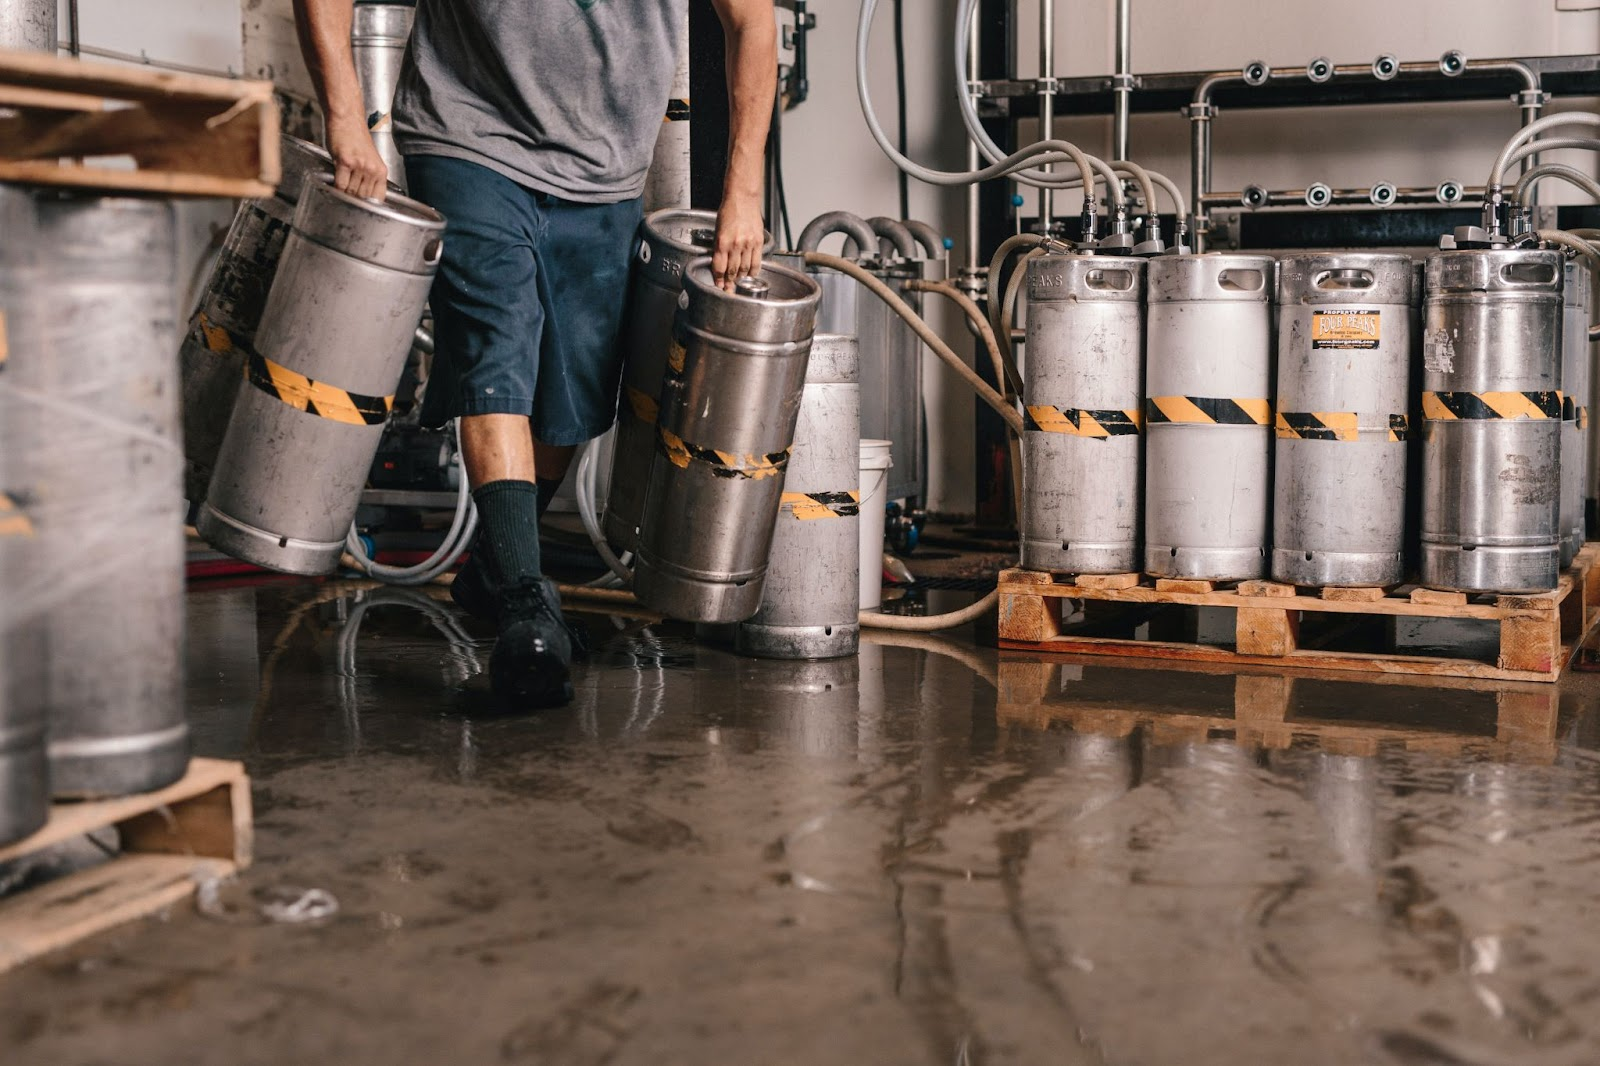 Brewery Self-Distribution vs. Traditional Distribution: Which Is Better?